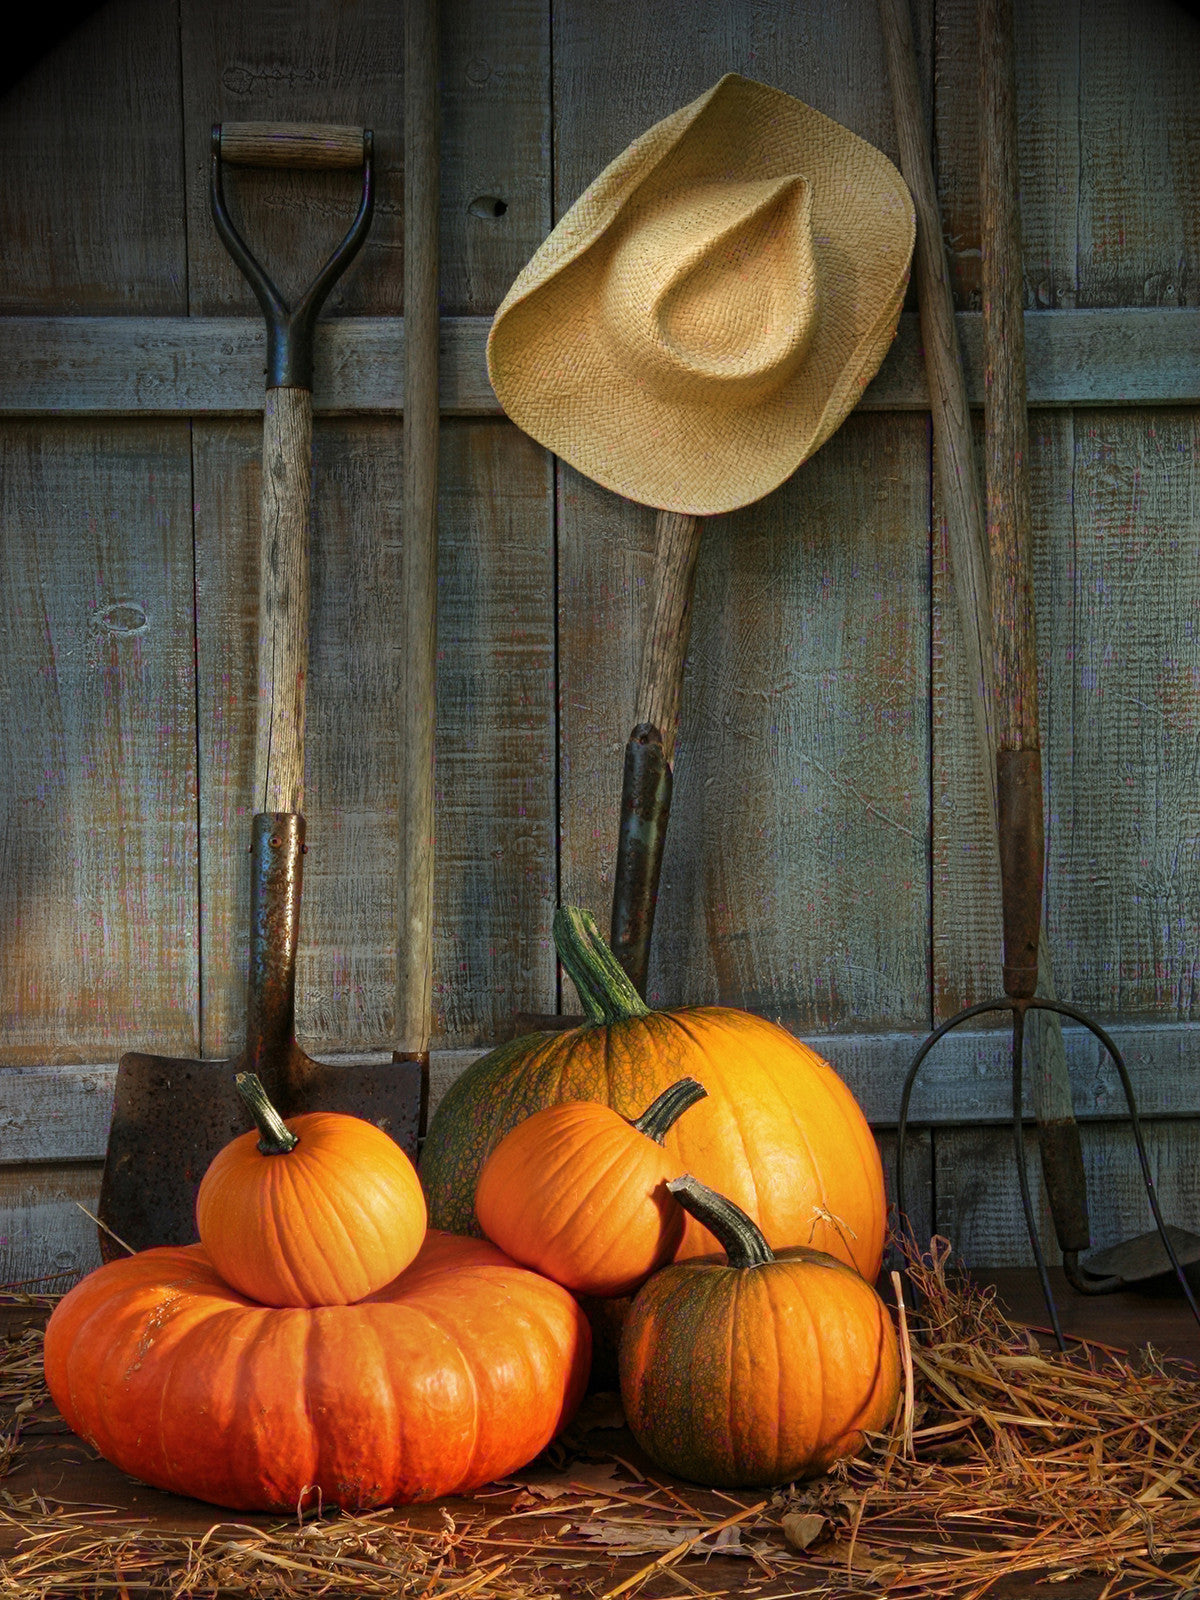 Pumkins With Shovel Printed Photo Background / 9408 - DropPlace